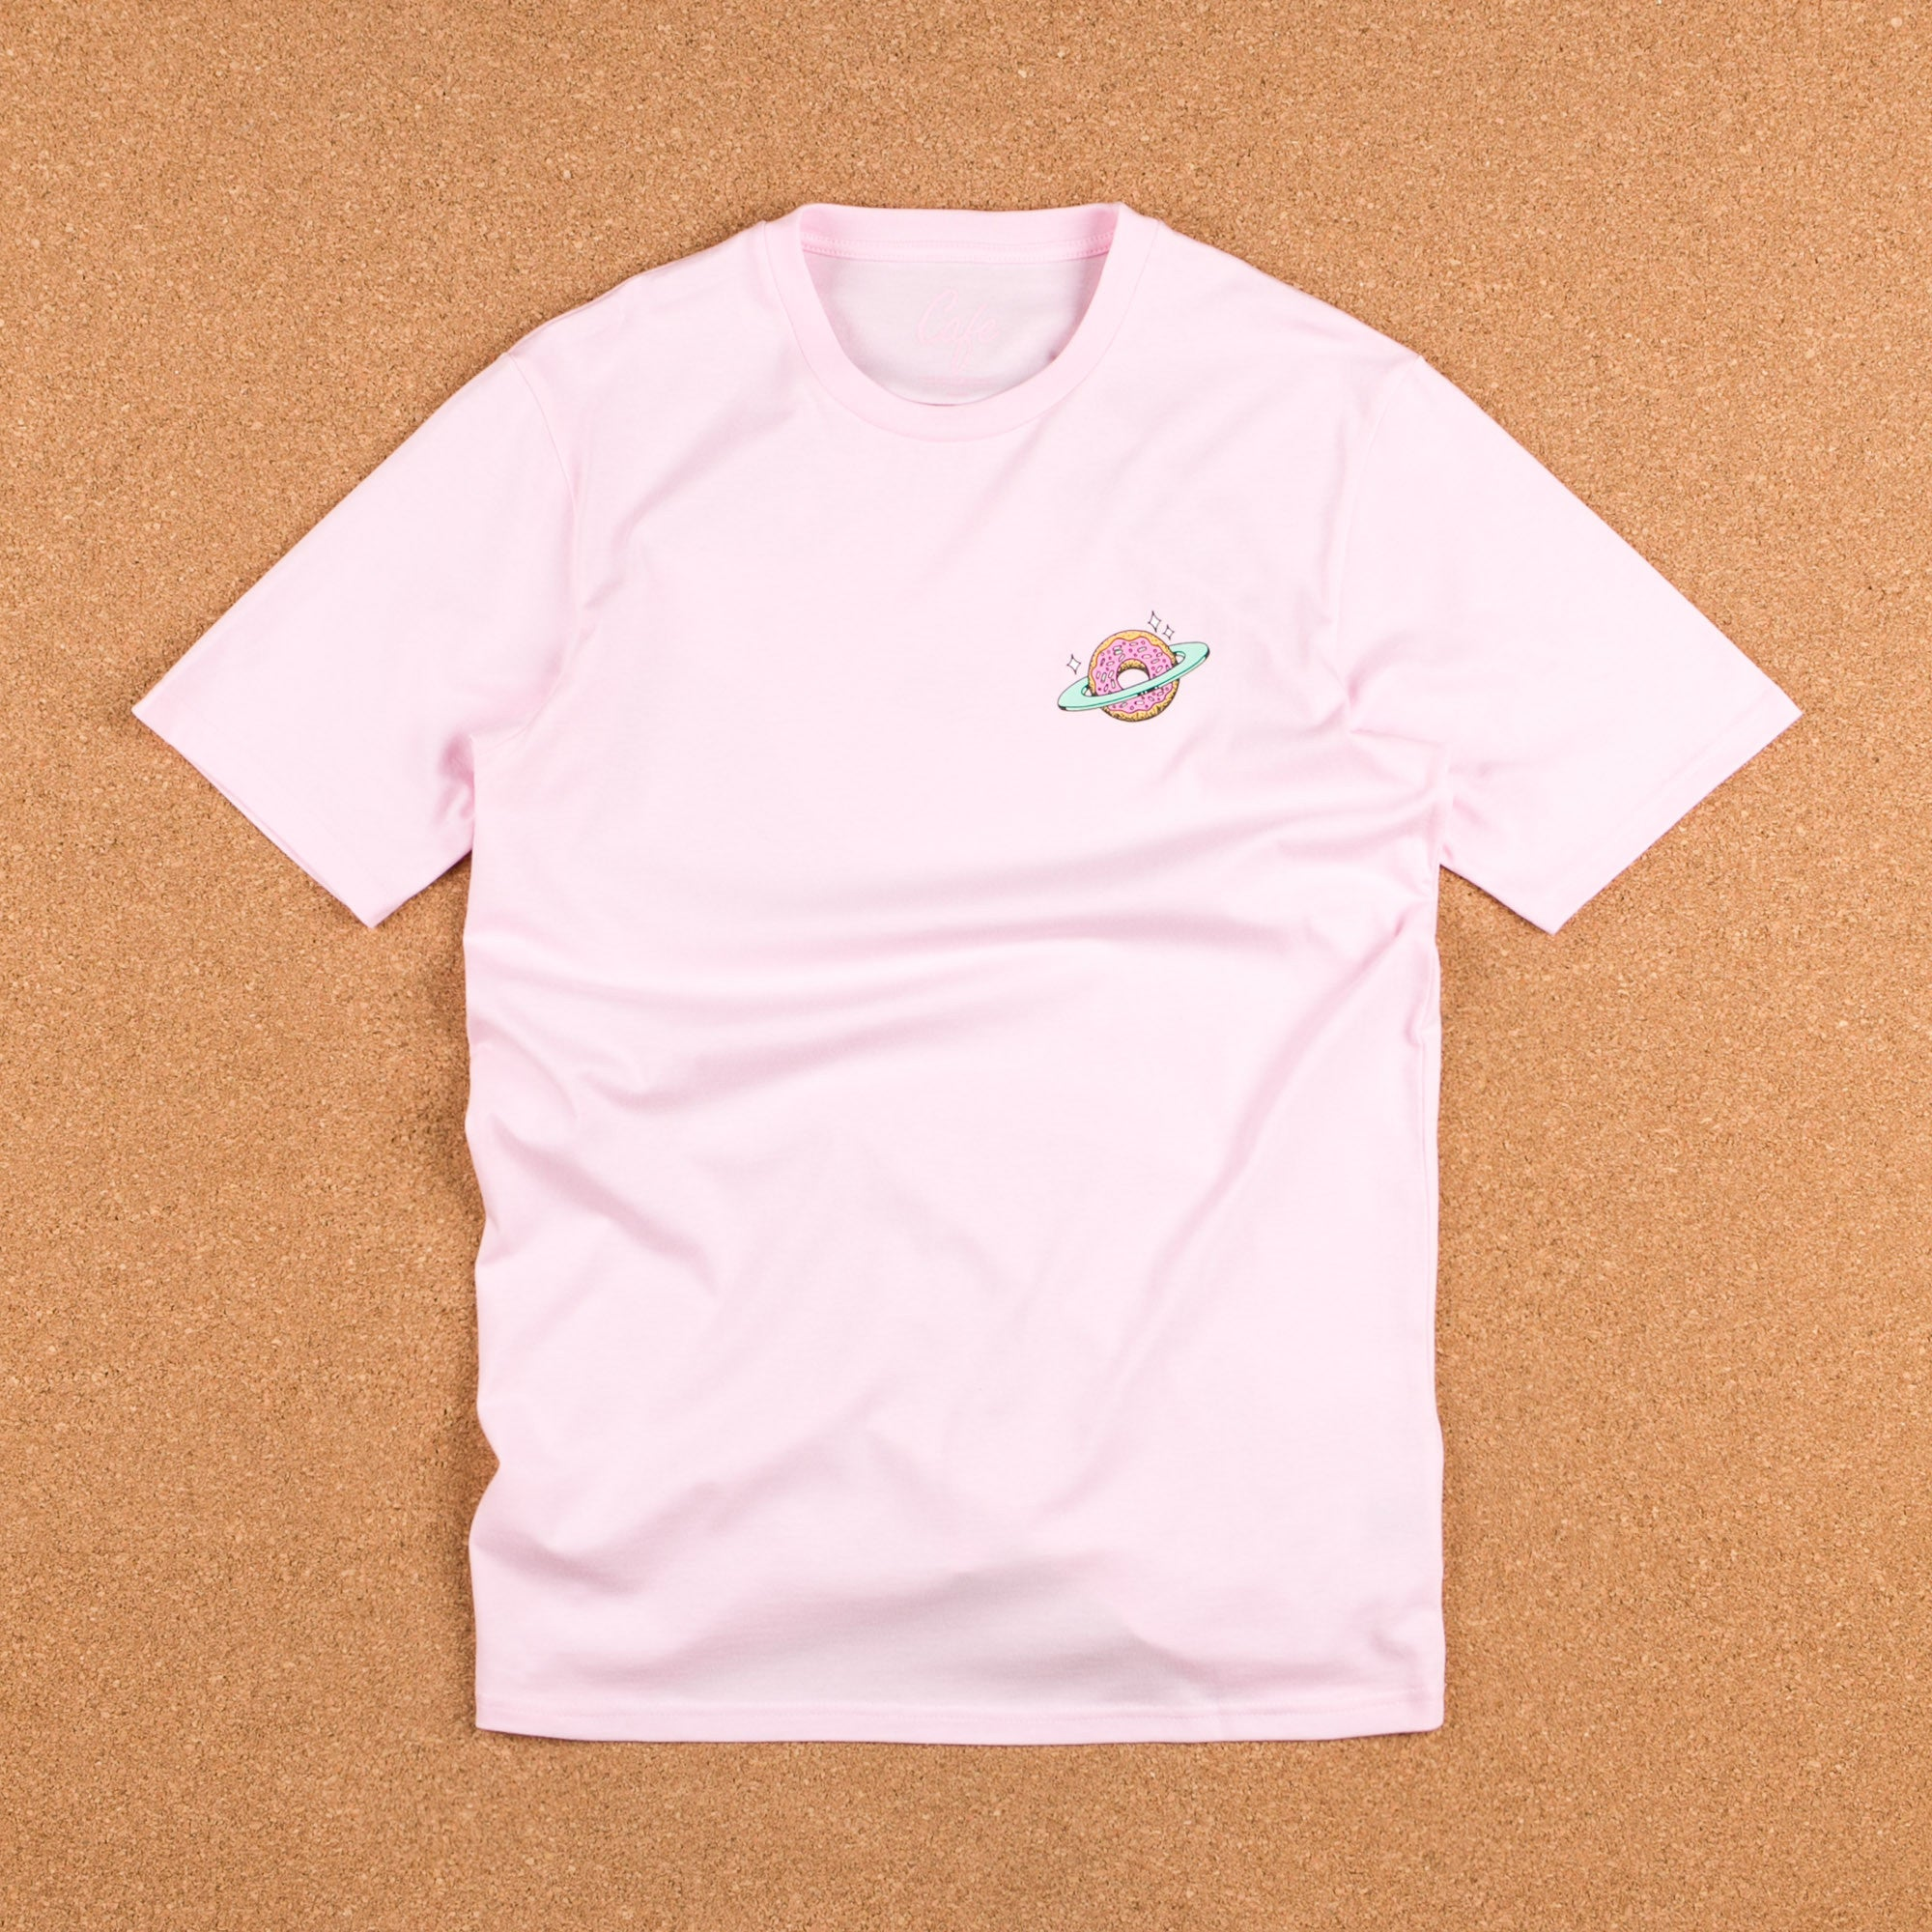 Skateboard Cafe Planet Donut T-Shirt - Pink / Blue